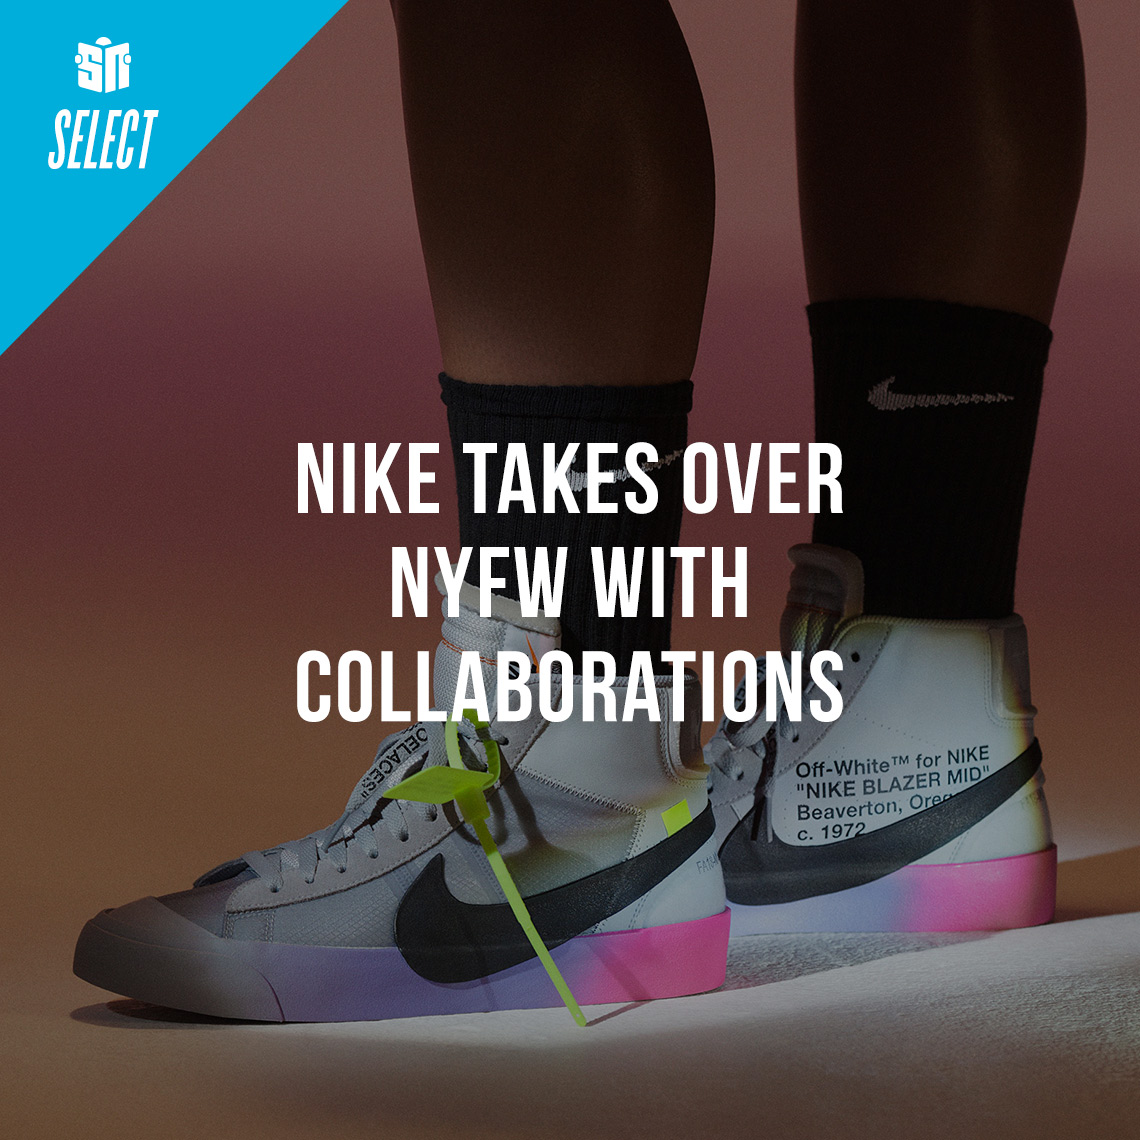 Off-White, PSNY, Skepta, And More Nike Collaborations For NYFW And US Open